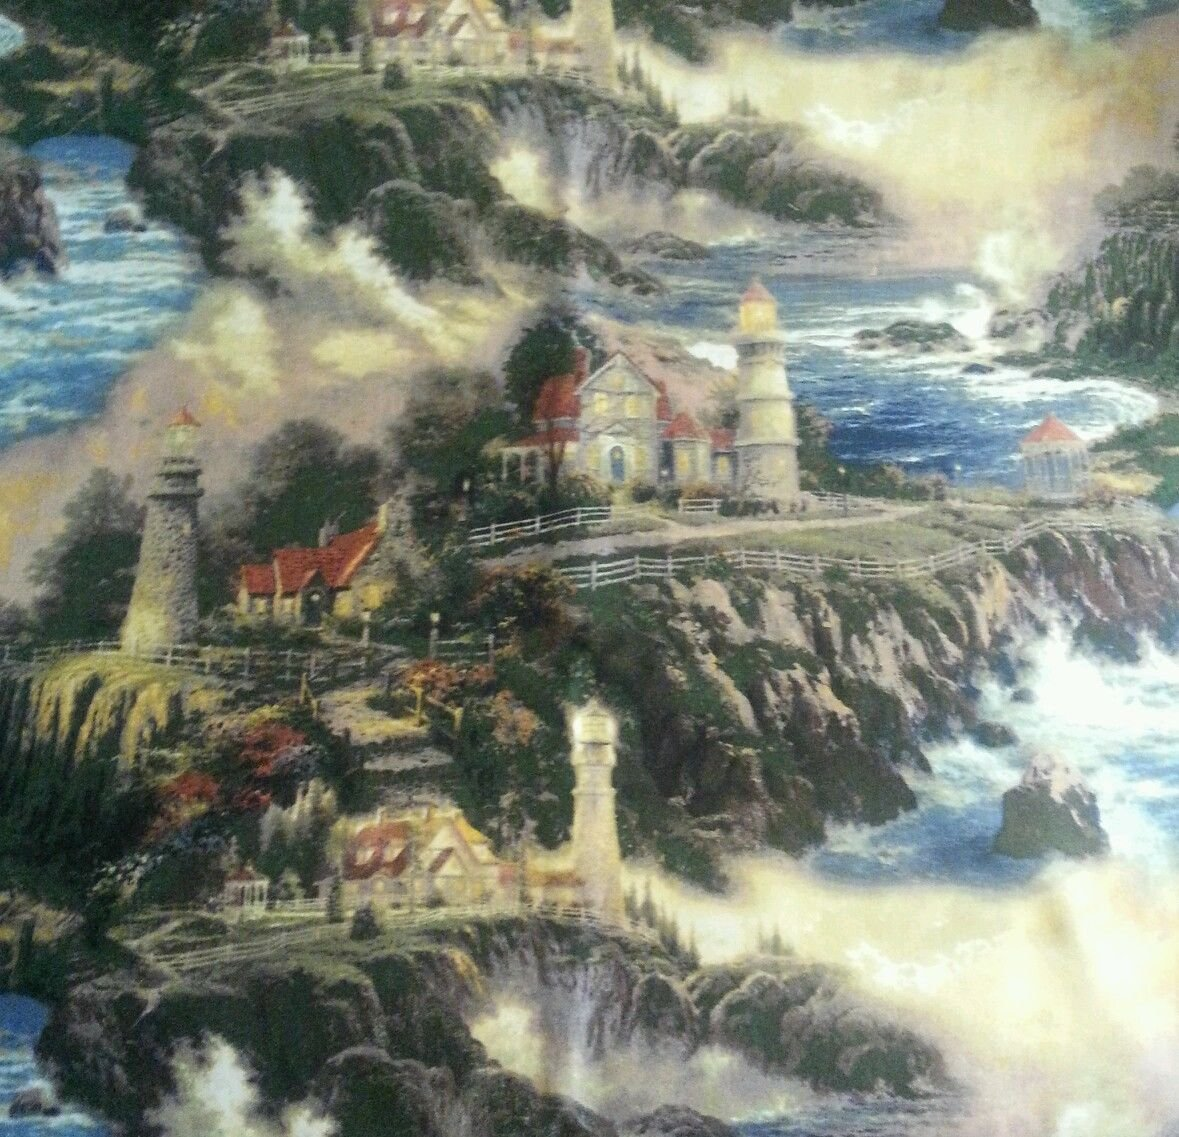 1 Yard - Serenity Cove Lighthouse by the Ocean Seaside Cliffs Cotton Fabric - by Thomas Kinkade (Great for Quilting, Sewing, Craft Projects, Throw Pillows & More) 1 Yard X 44 David Textiles